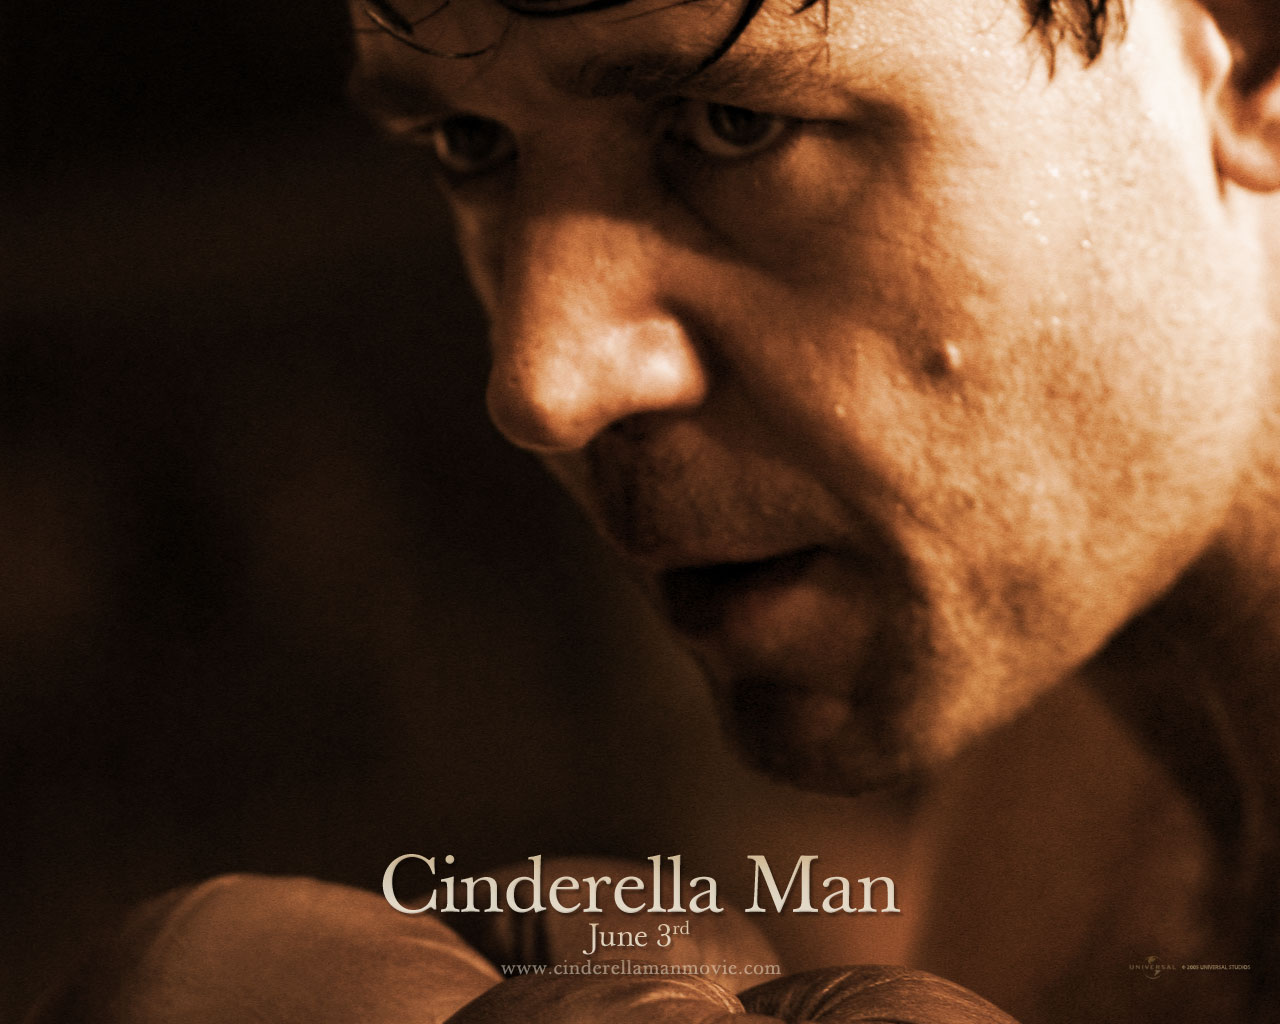 a cinderella man Cinderella man is a terrific boxing picture, but there's no great need for another one the need it fills is for a full-length portrait of a good man most serious movies live in a world of cynicism and irony, and most good-hearted movie characters live in bad movies.